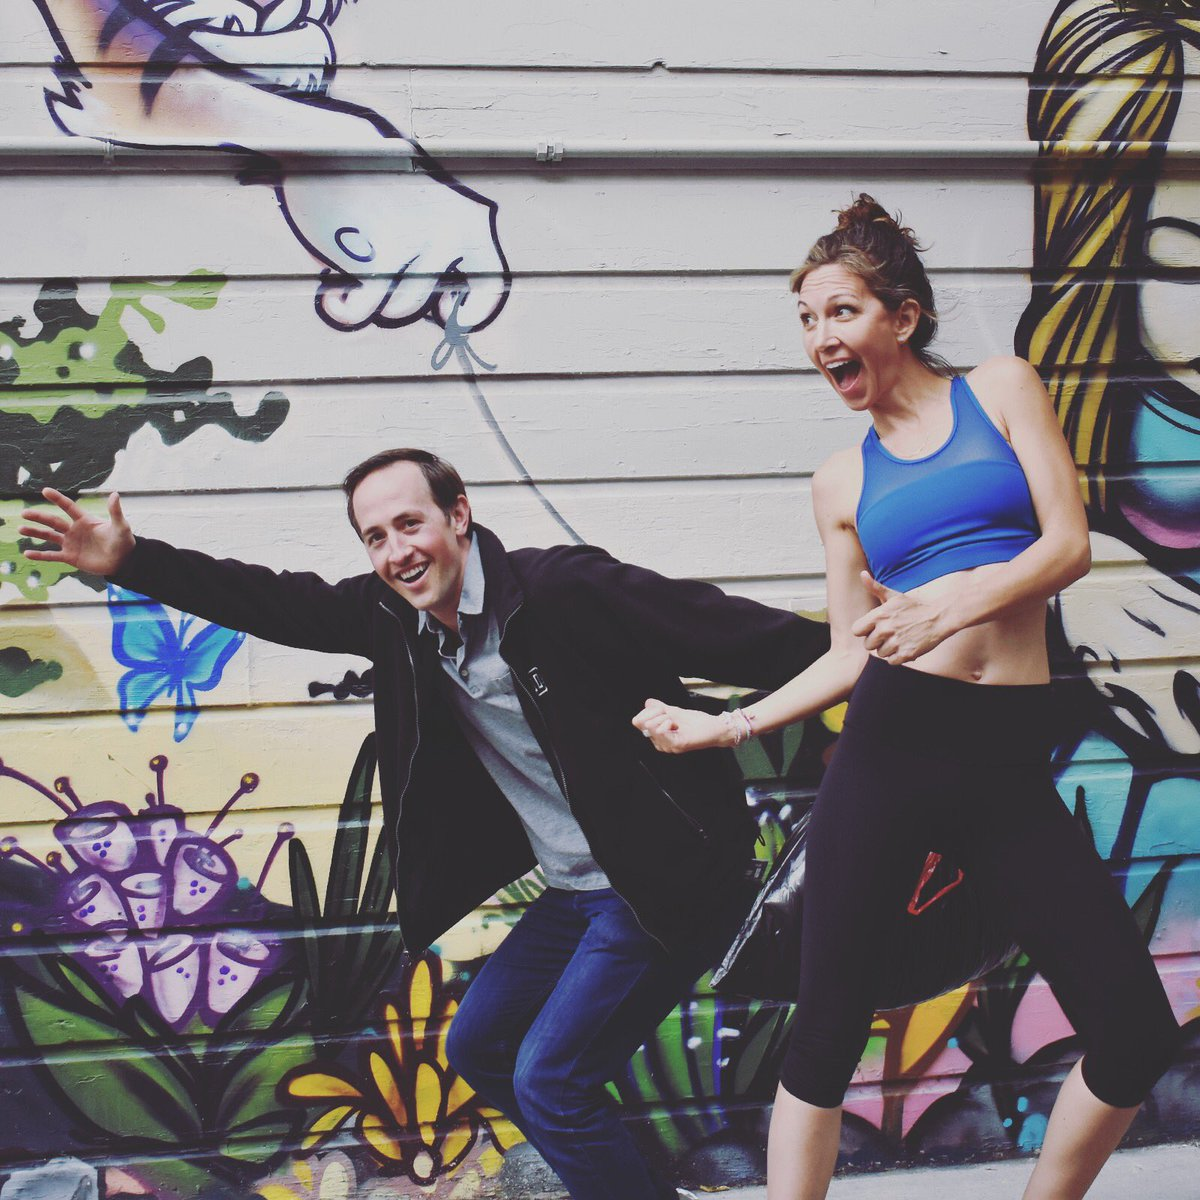 To our newest Burn fan, thanks for the awesome photo bomb in #HayesValley!   What's the best #PhotoBomb you've captured?   #StrongEveryday #BeABurner #PilatesFit #SFfitness #UpperBodyWorkout #cardiohiit #pilatesstudio #resistancebandsworkoutpic.twitter.com/J5GK5CyA2L